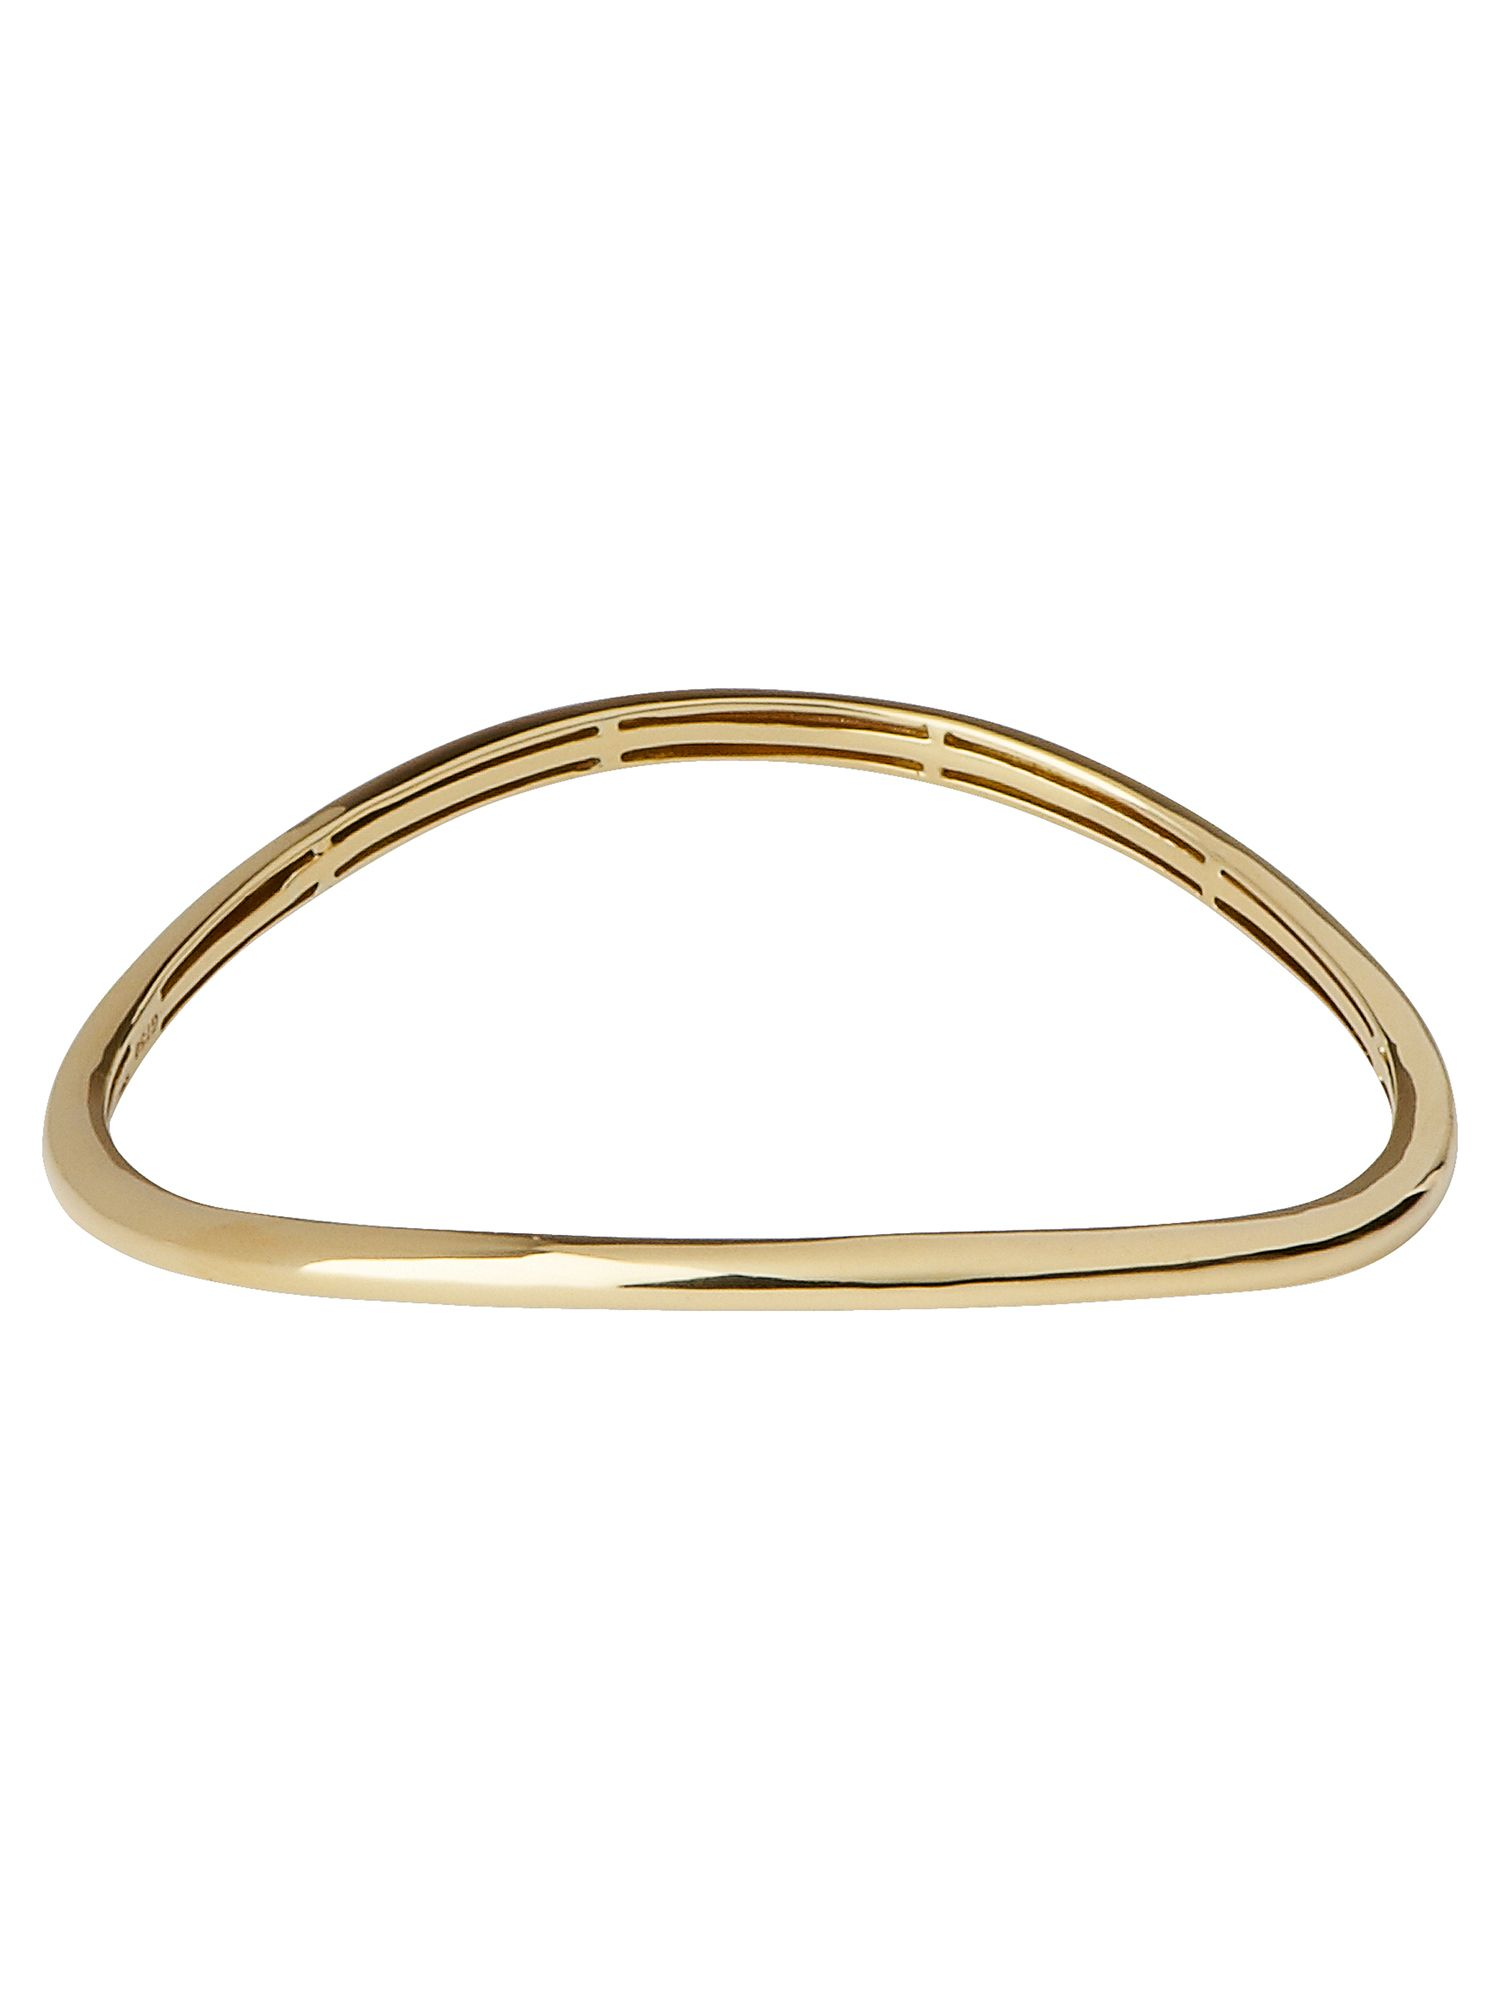 Essentials infinite gold bangle